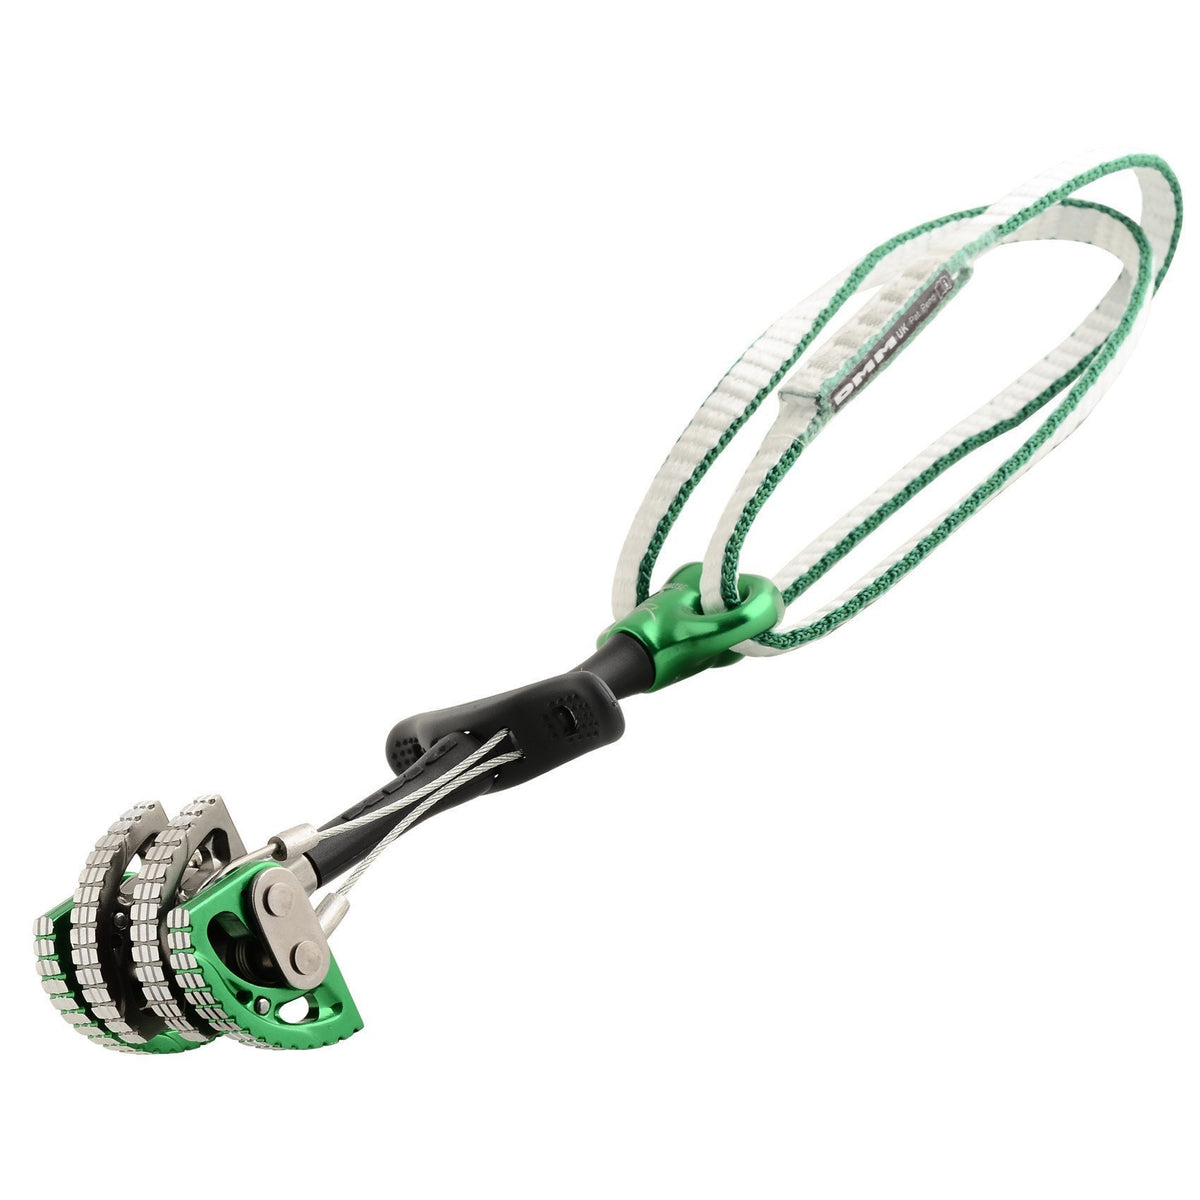 DMM Dragon Cam, Size 2 in green colour